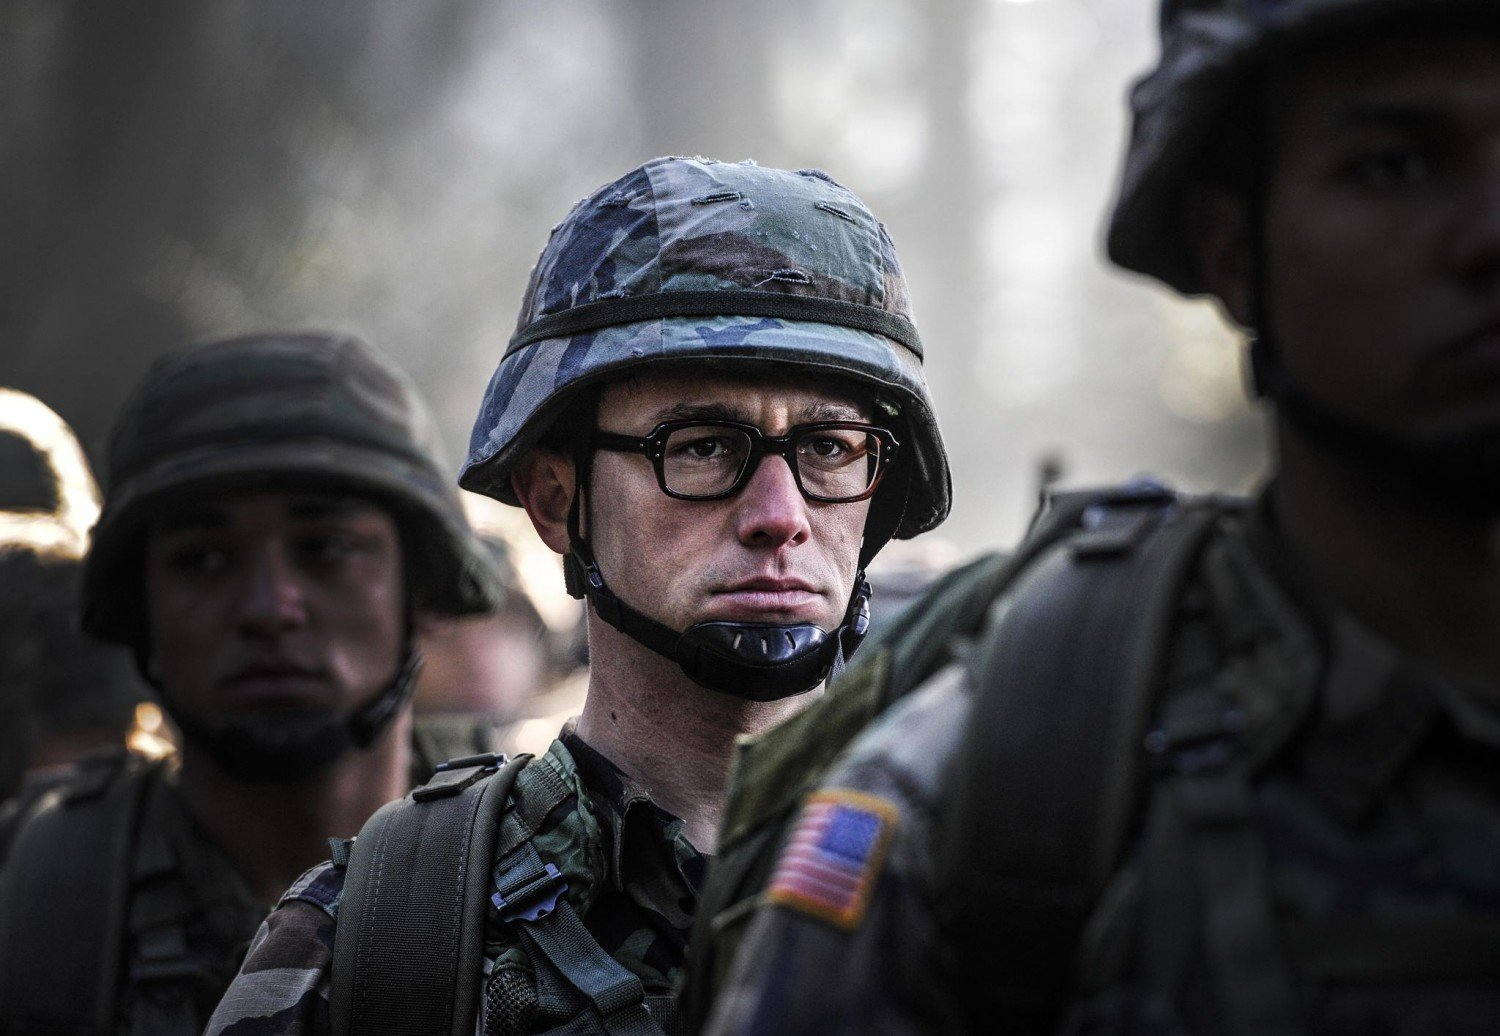 still-of-joseph-gordon-levitt-in-snowden-2016-1500x1036